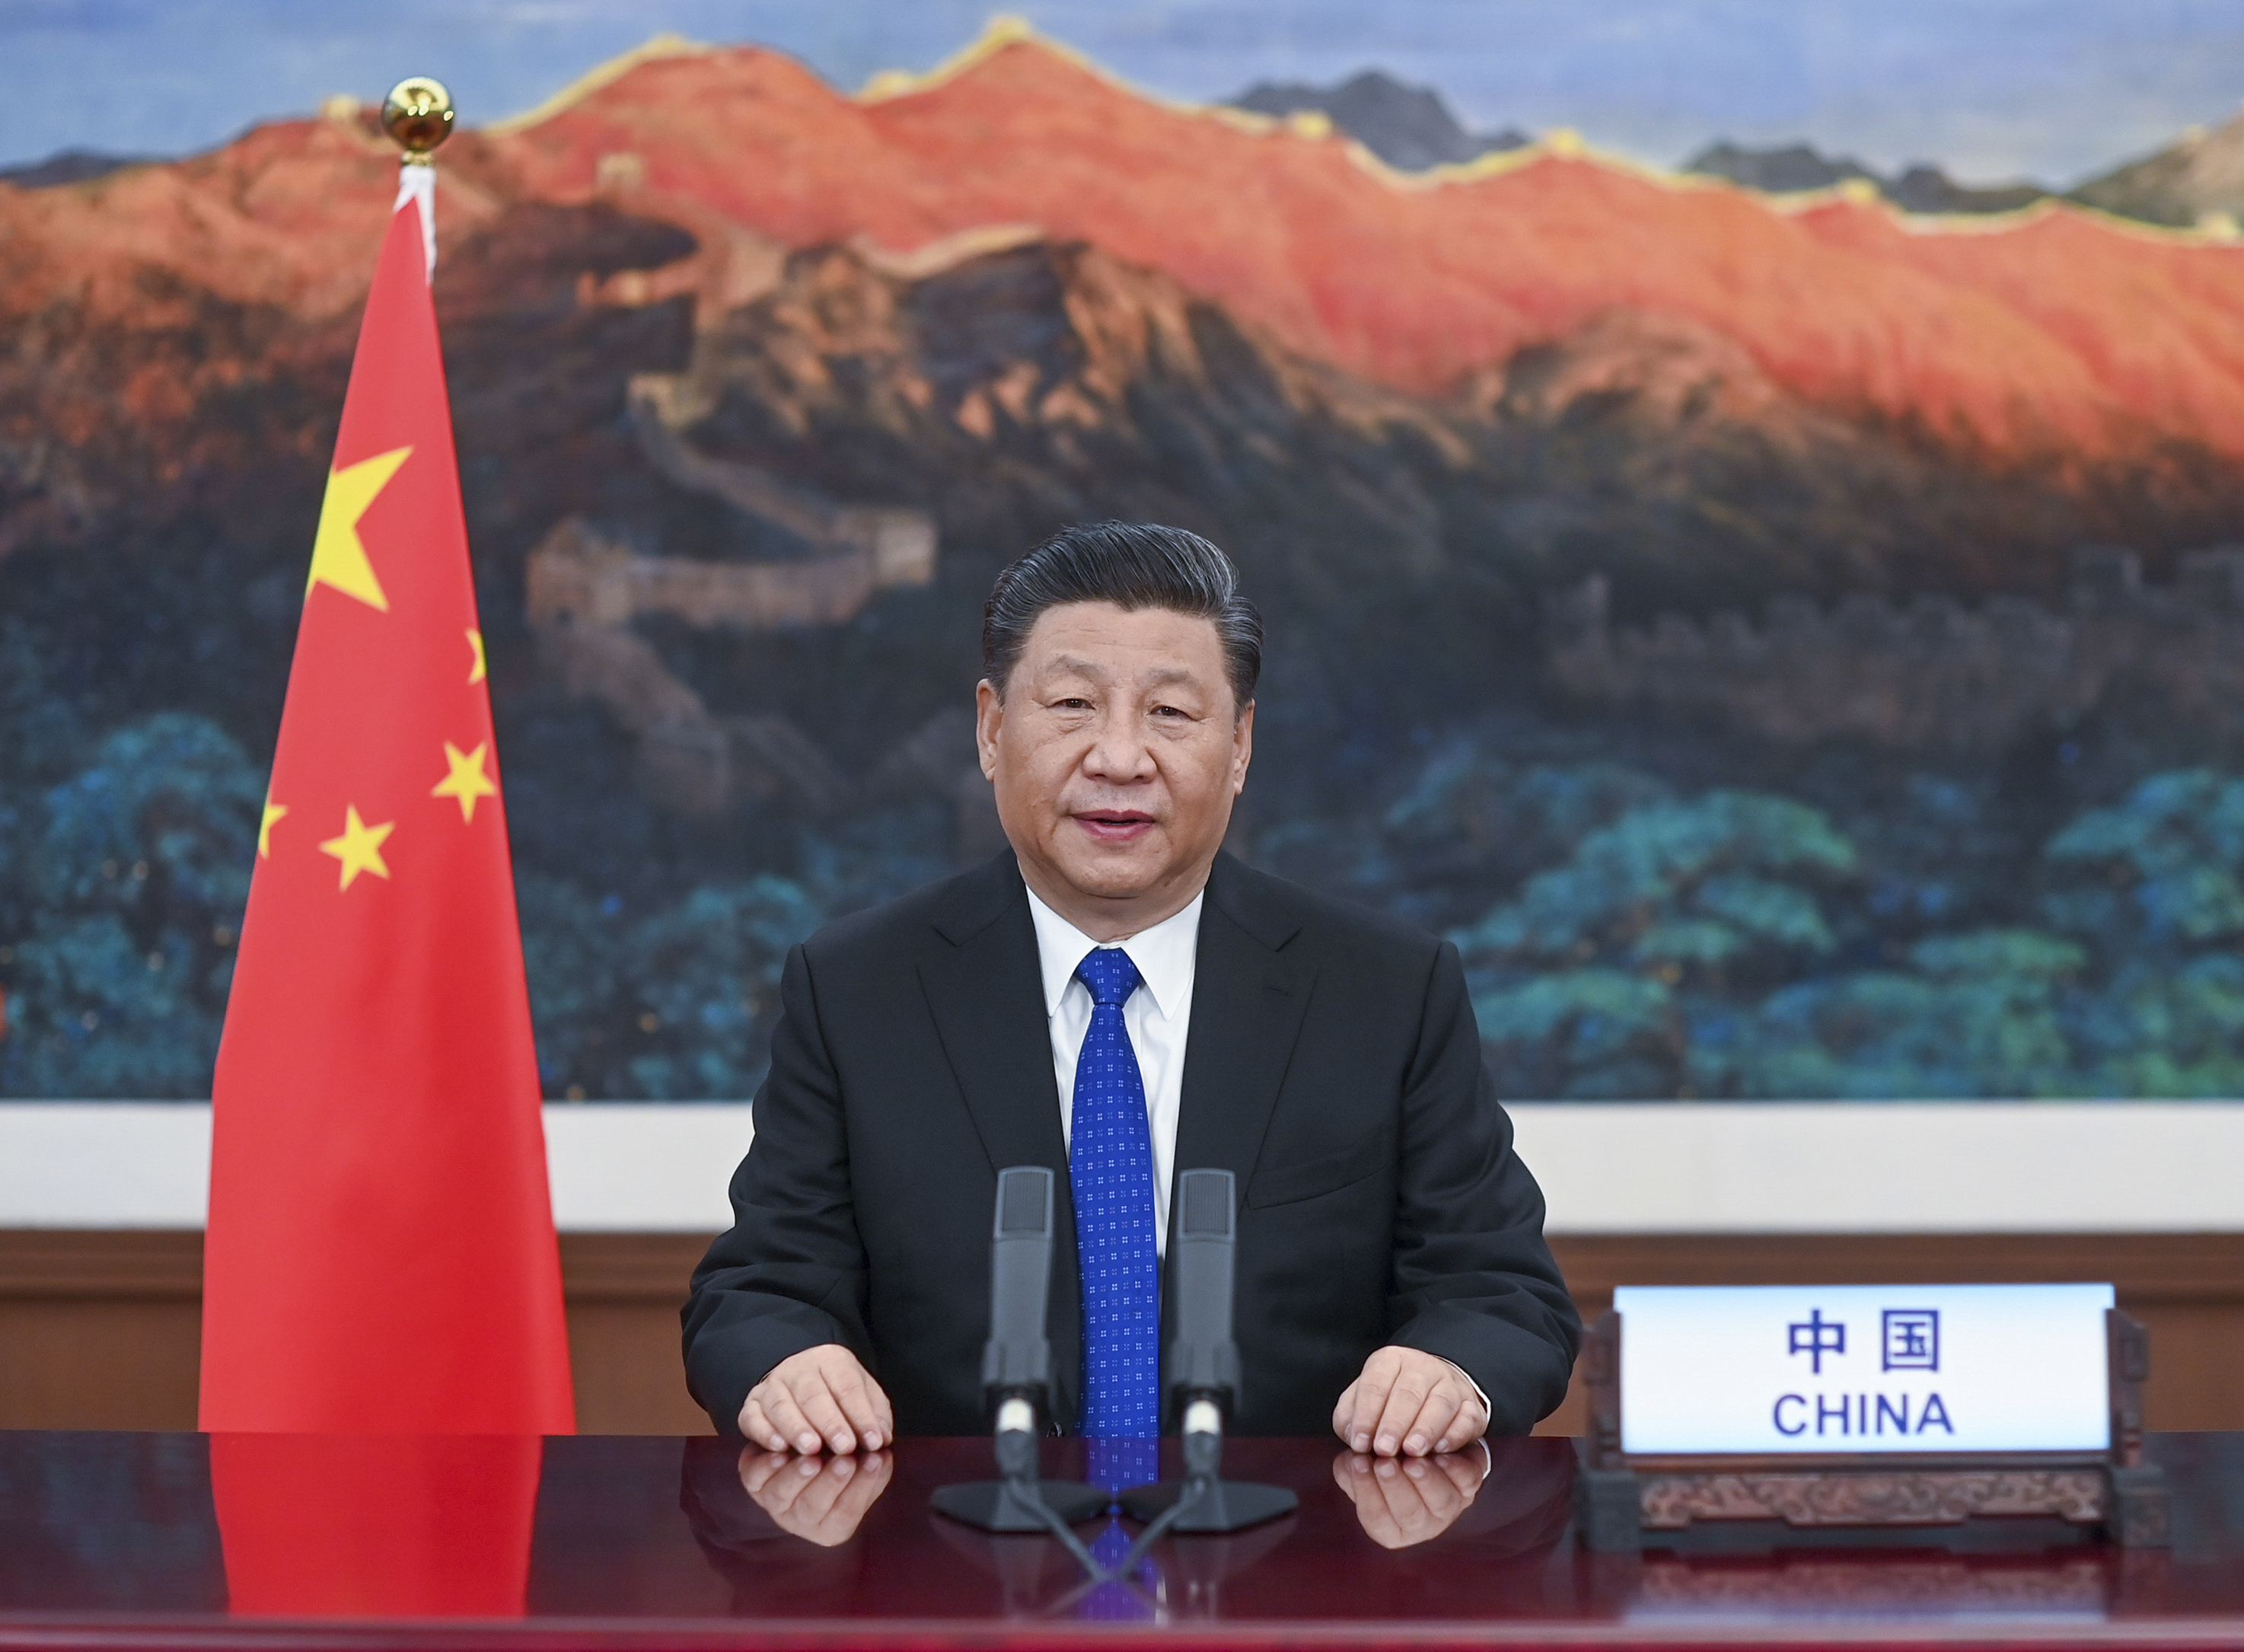 Chinese President Xi Jinping is chairman of the Central Military Commission.